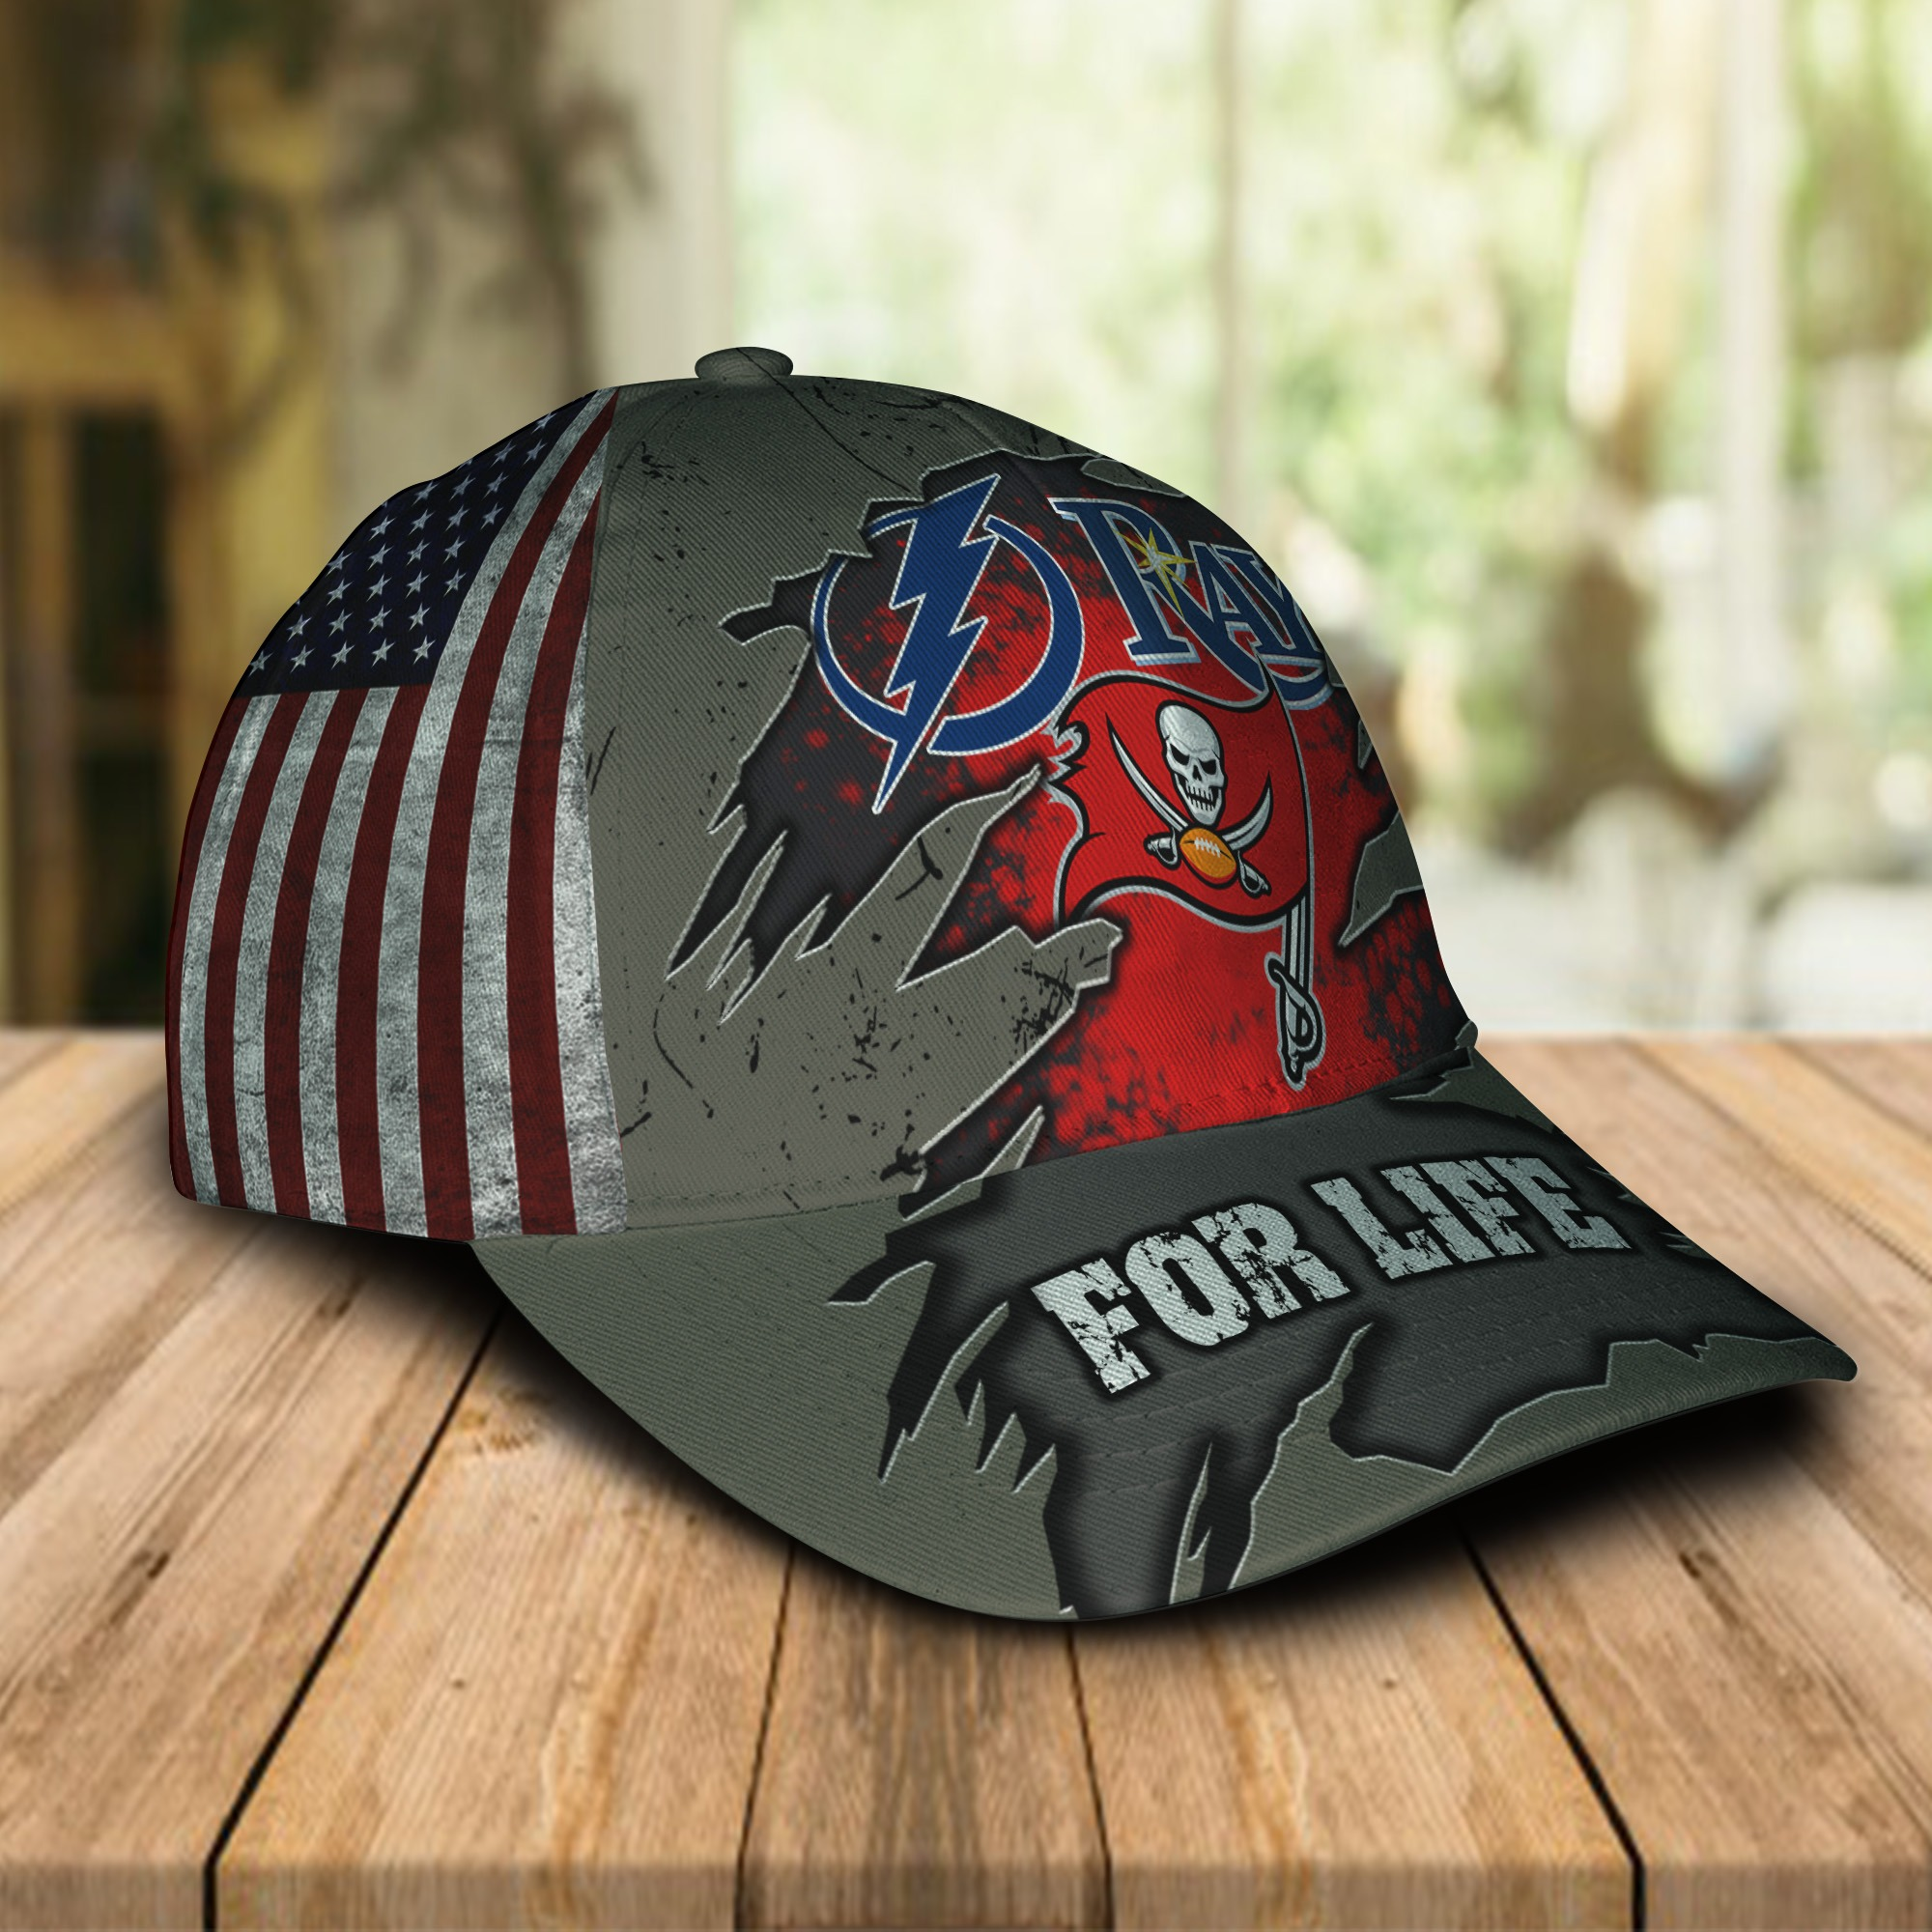 Tampa Bay Lightning Buccaneers Rays for life cap 1